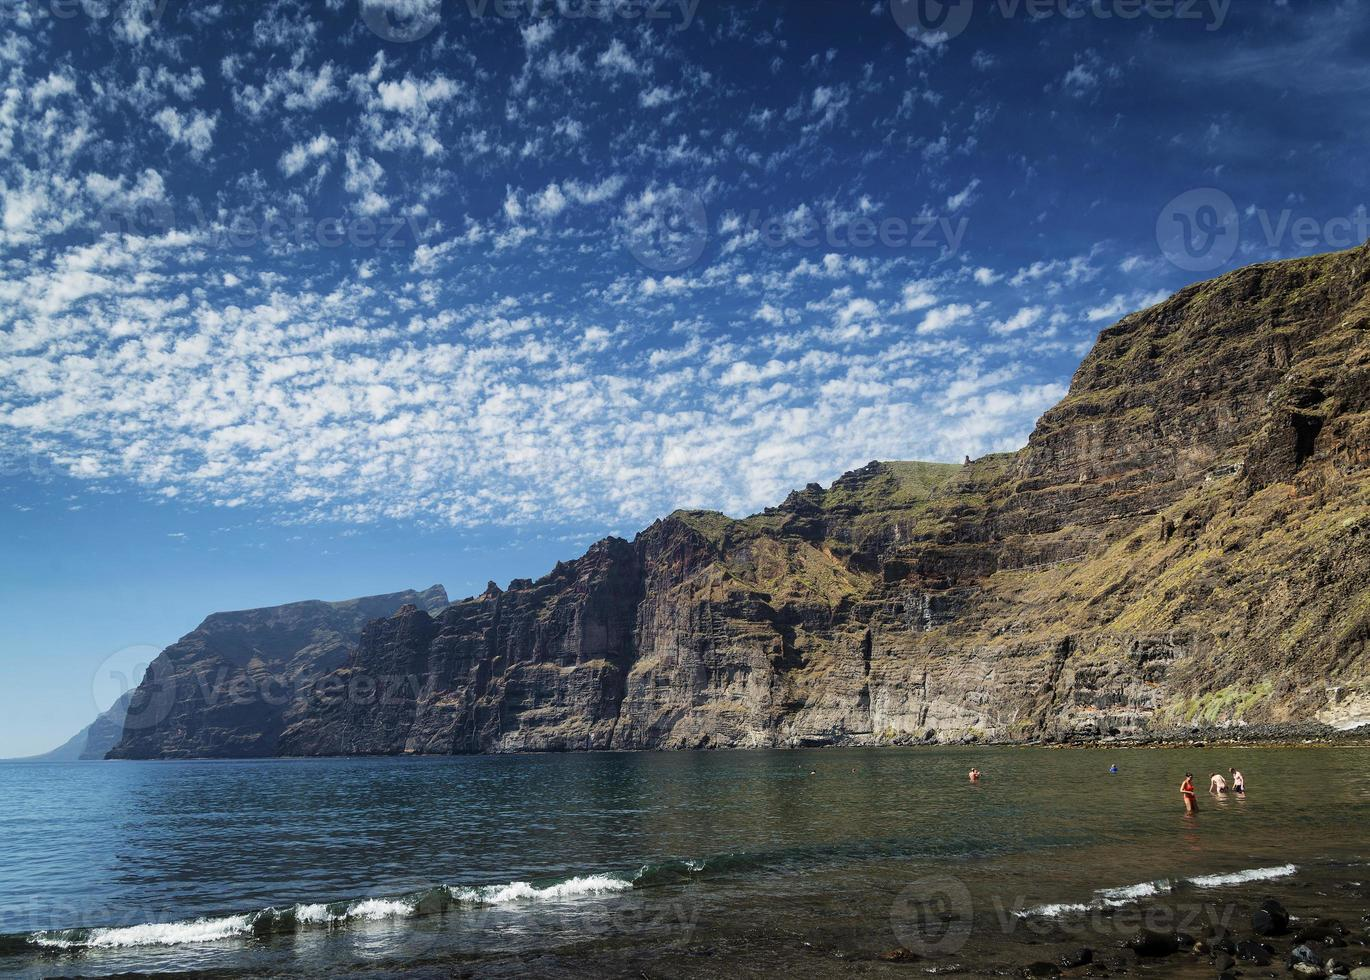 Los Gigantes cliffs nature landmark and resorts in South Tenerife island Spain photo